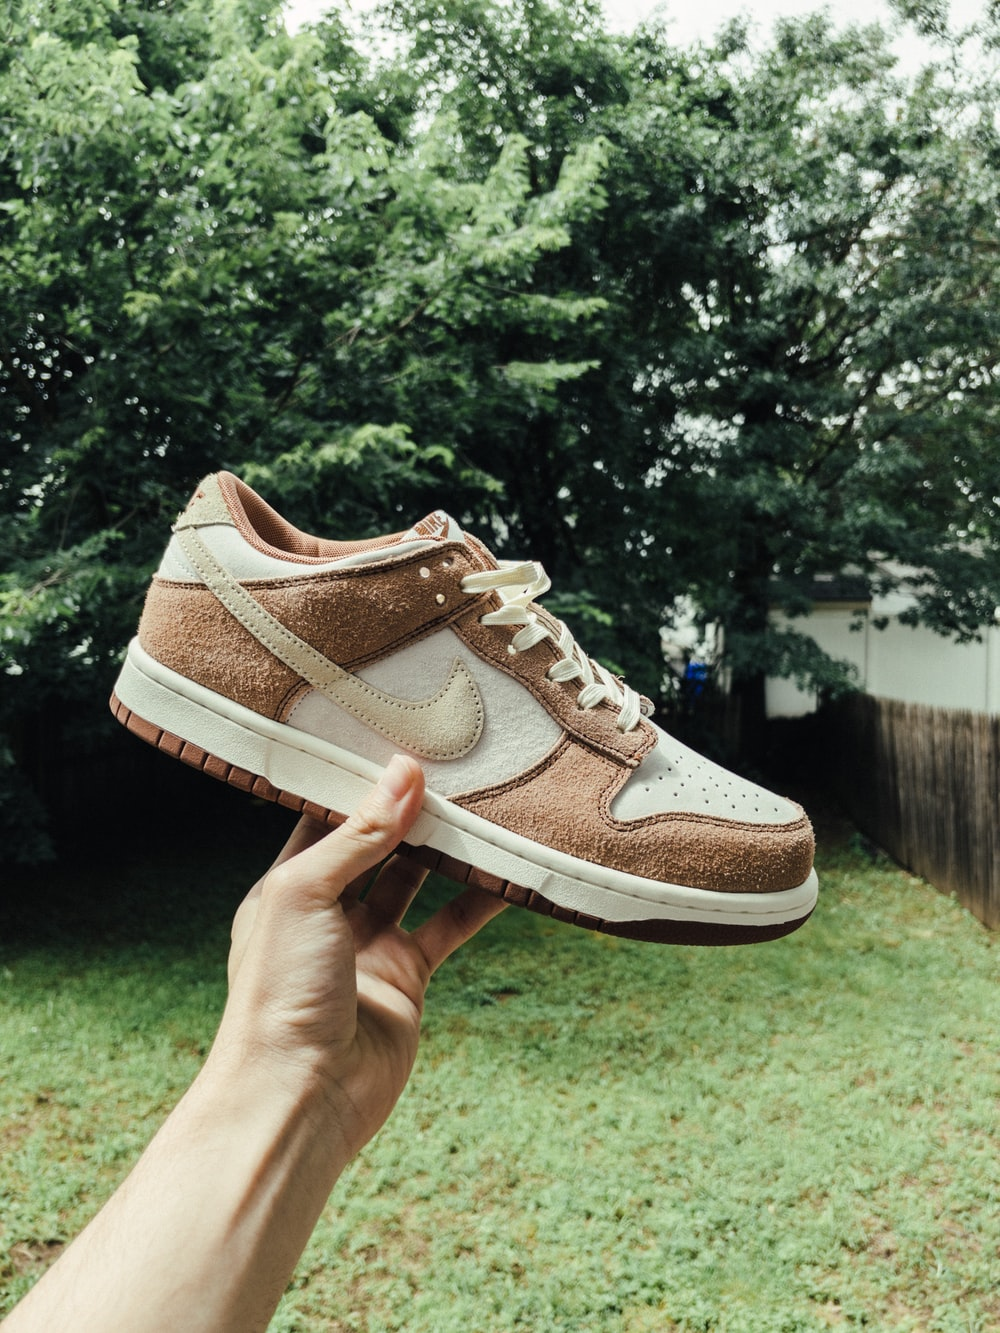 person holding white and brown nike athletic shoe